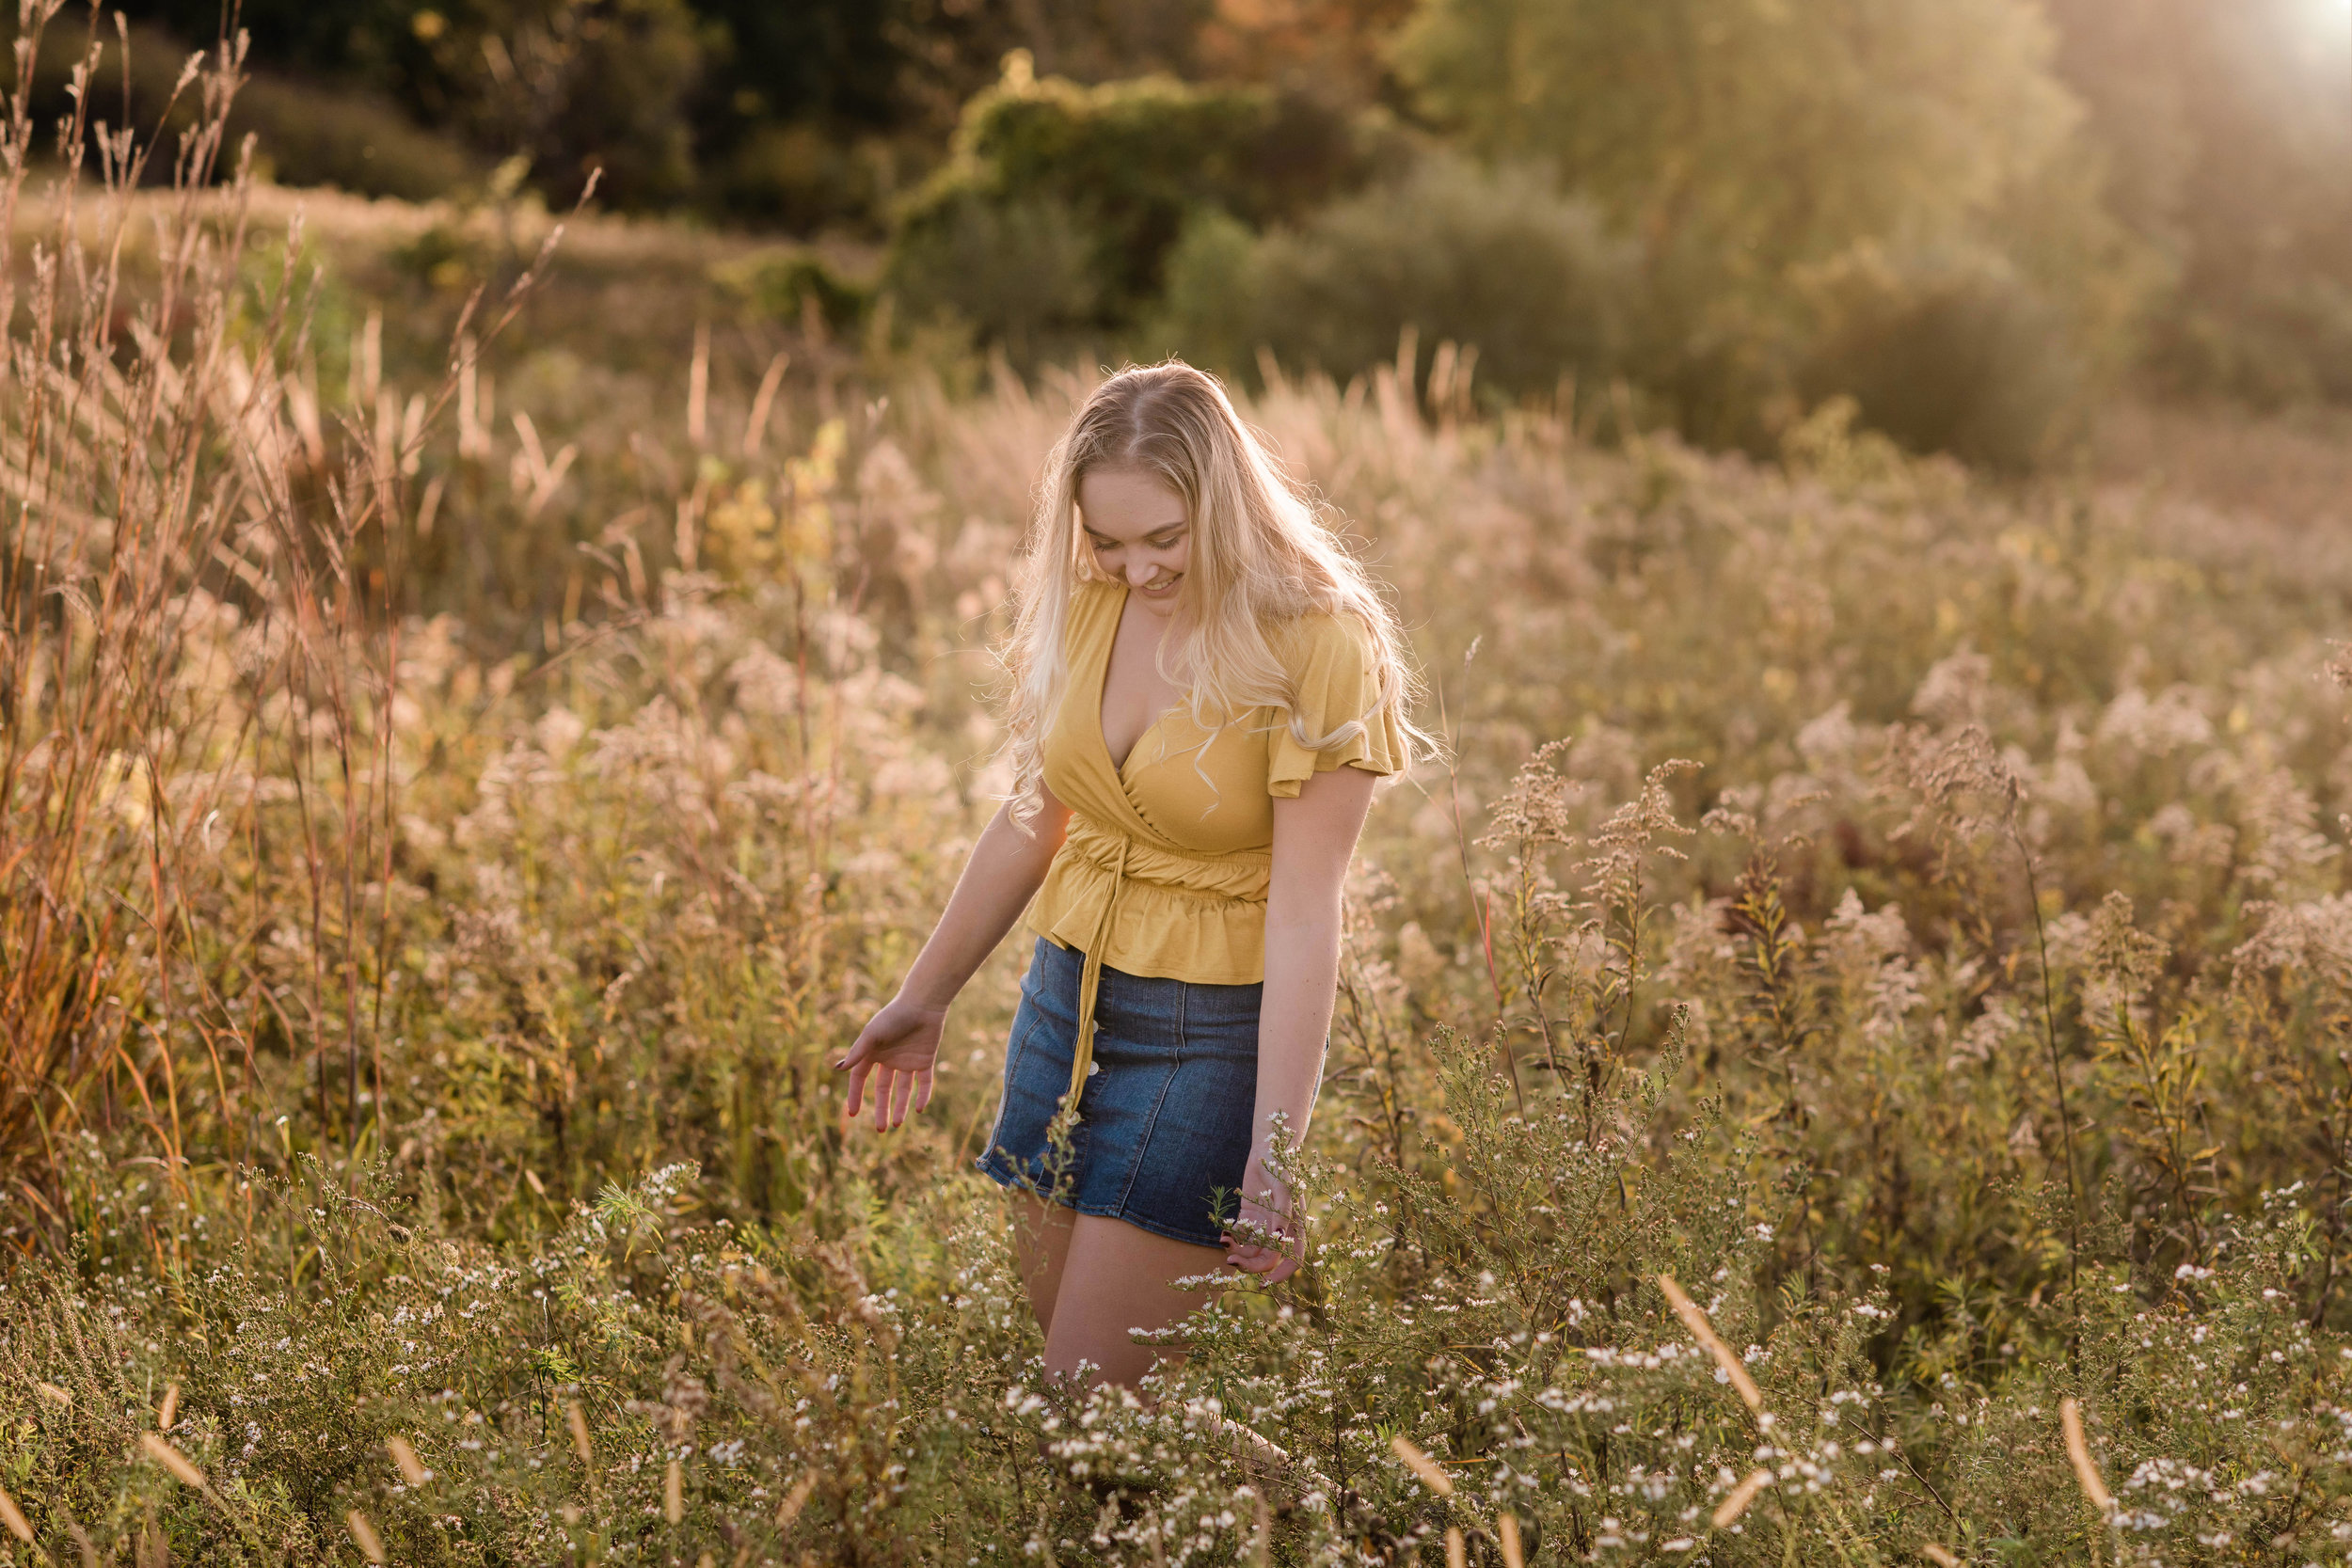 High school senior touching long grass